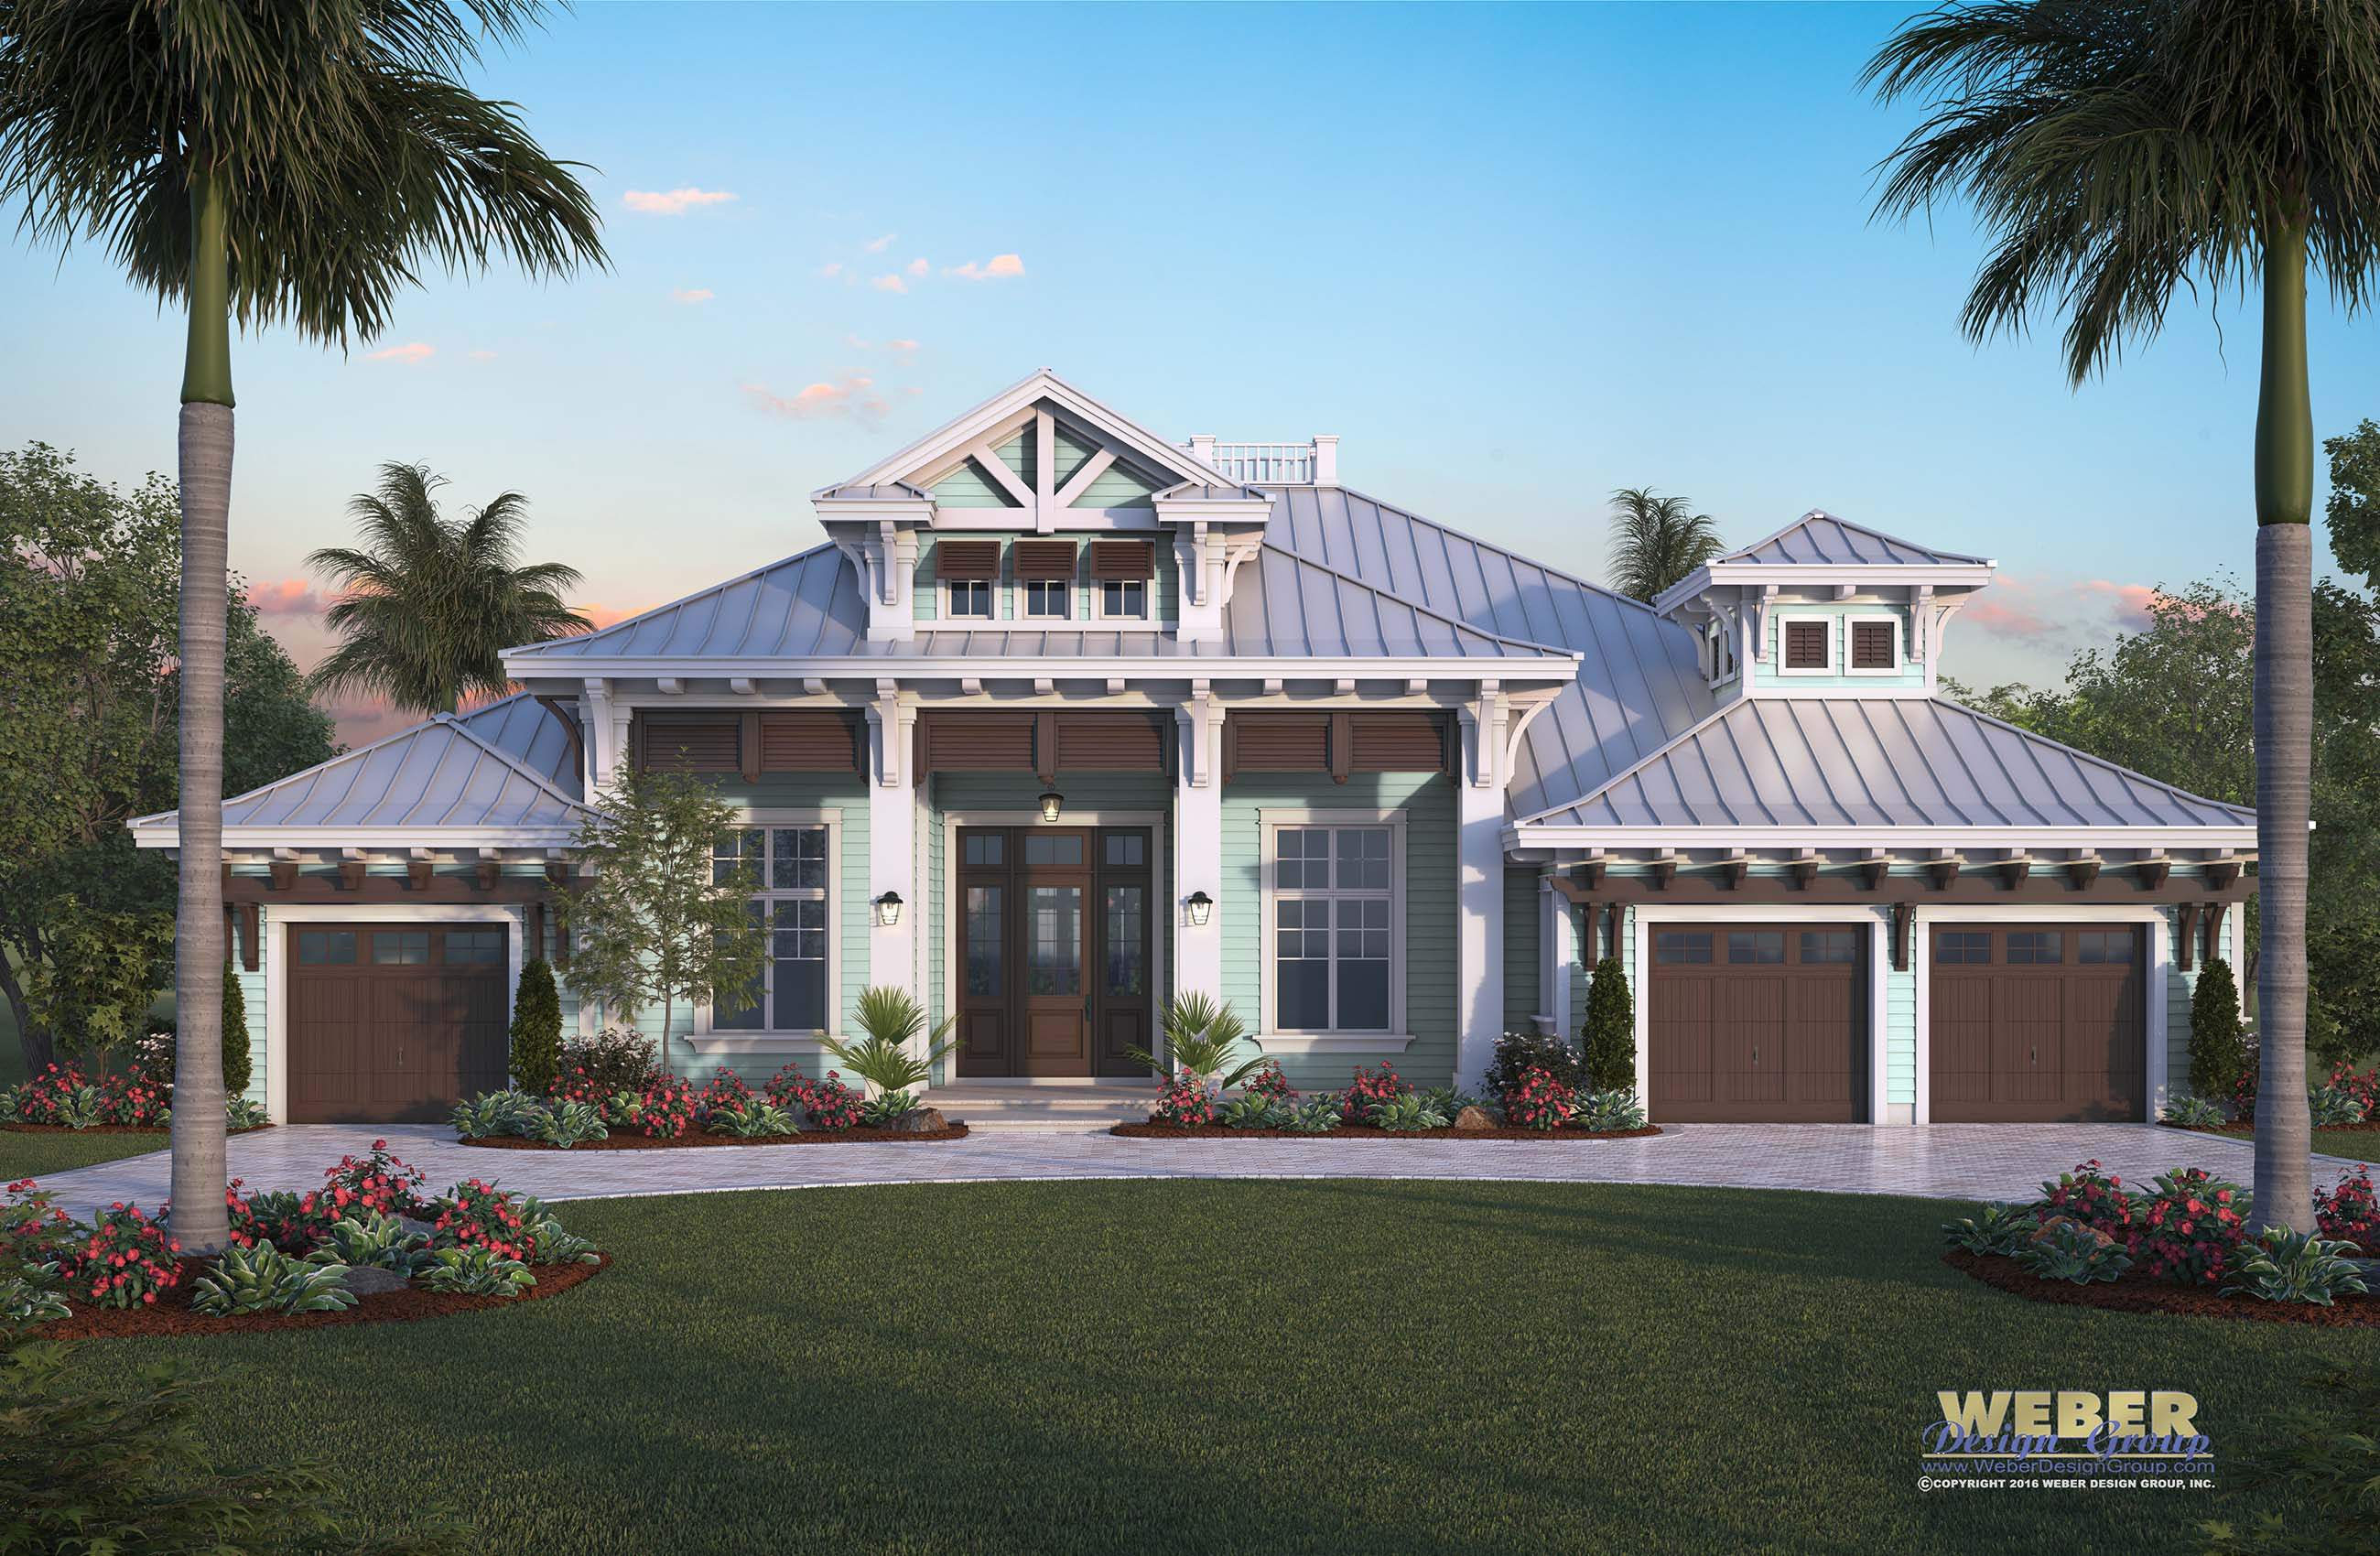 Harbor house plan luxury caribbean beach home outdoor for Coastal style house plans